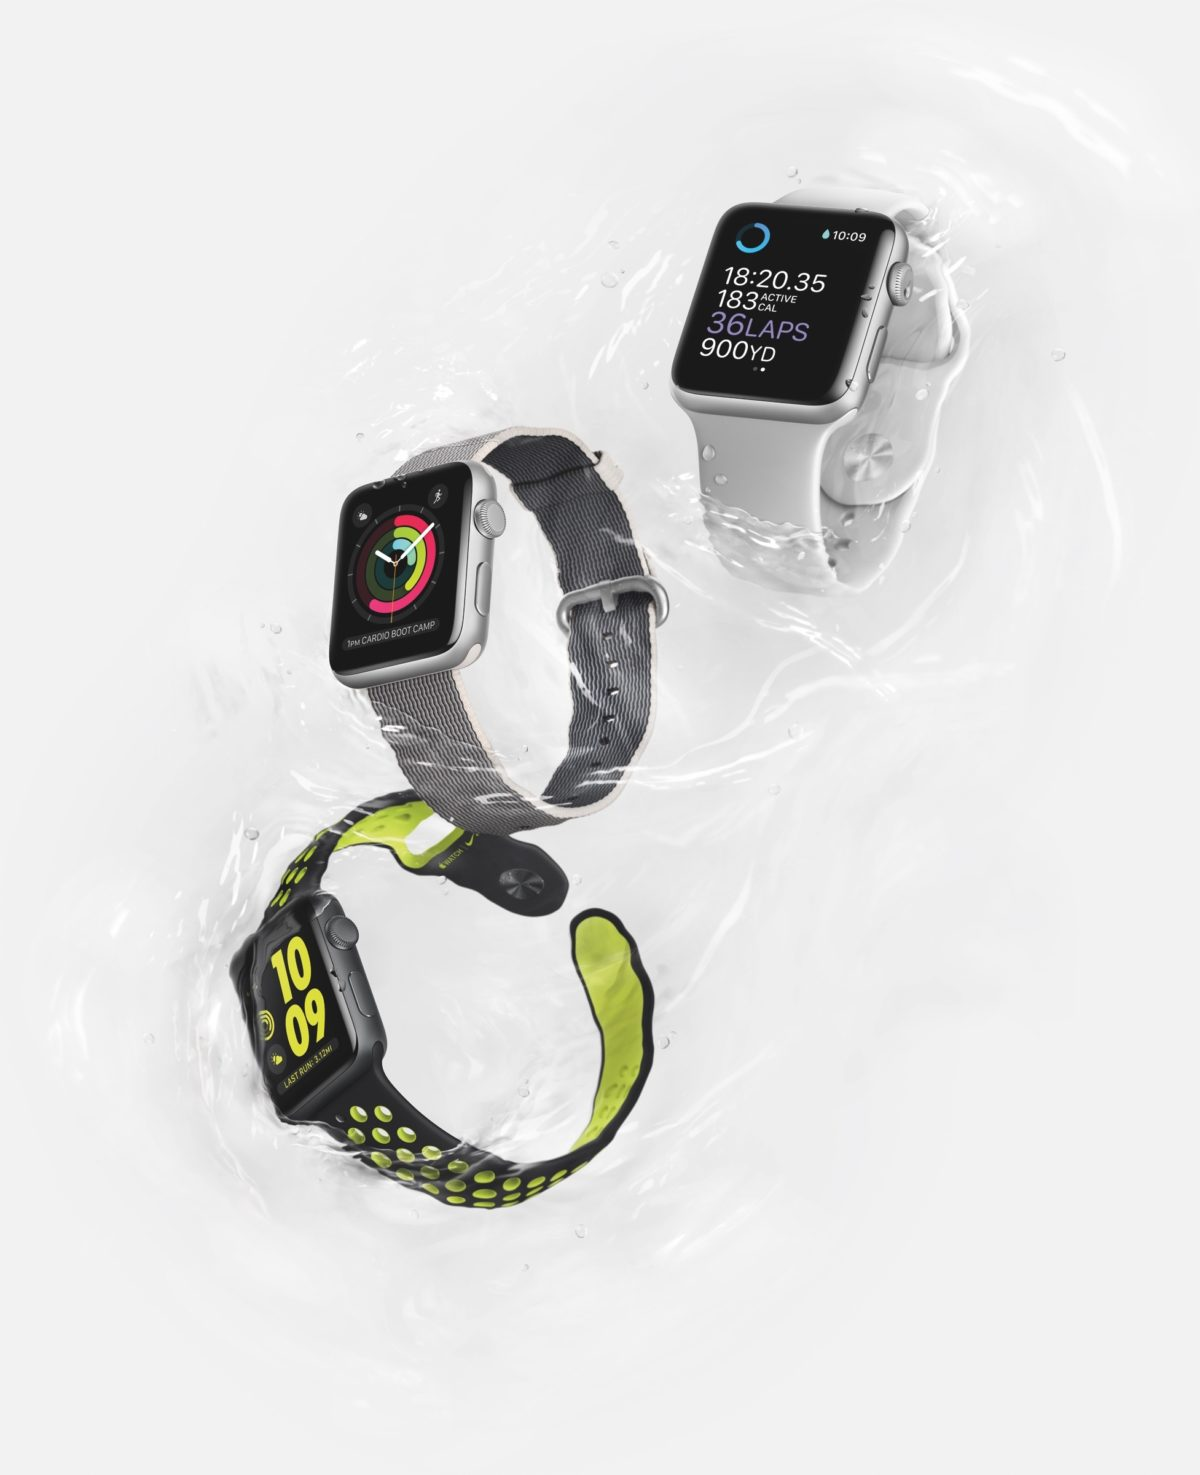 Apple Watch, Aetna